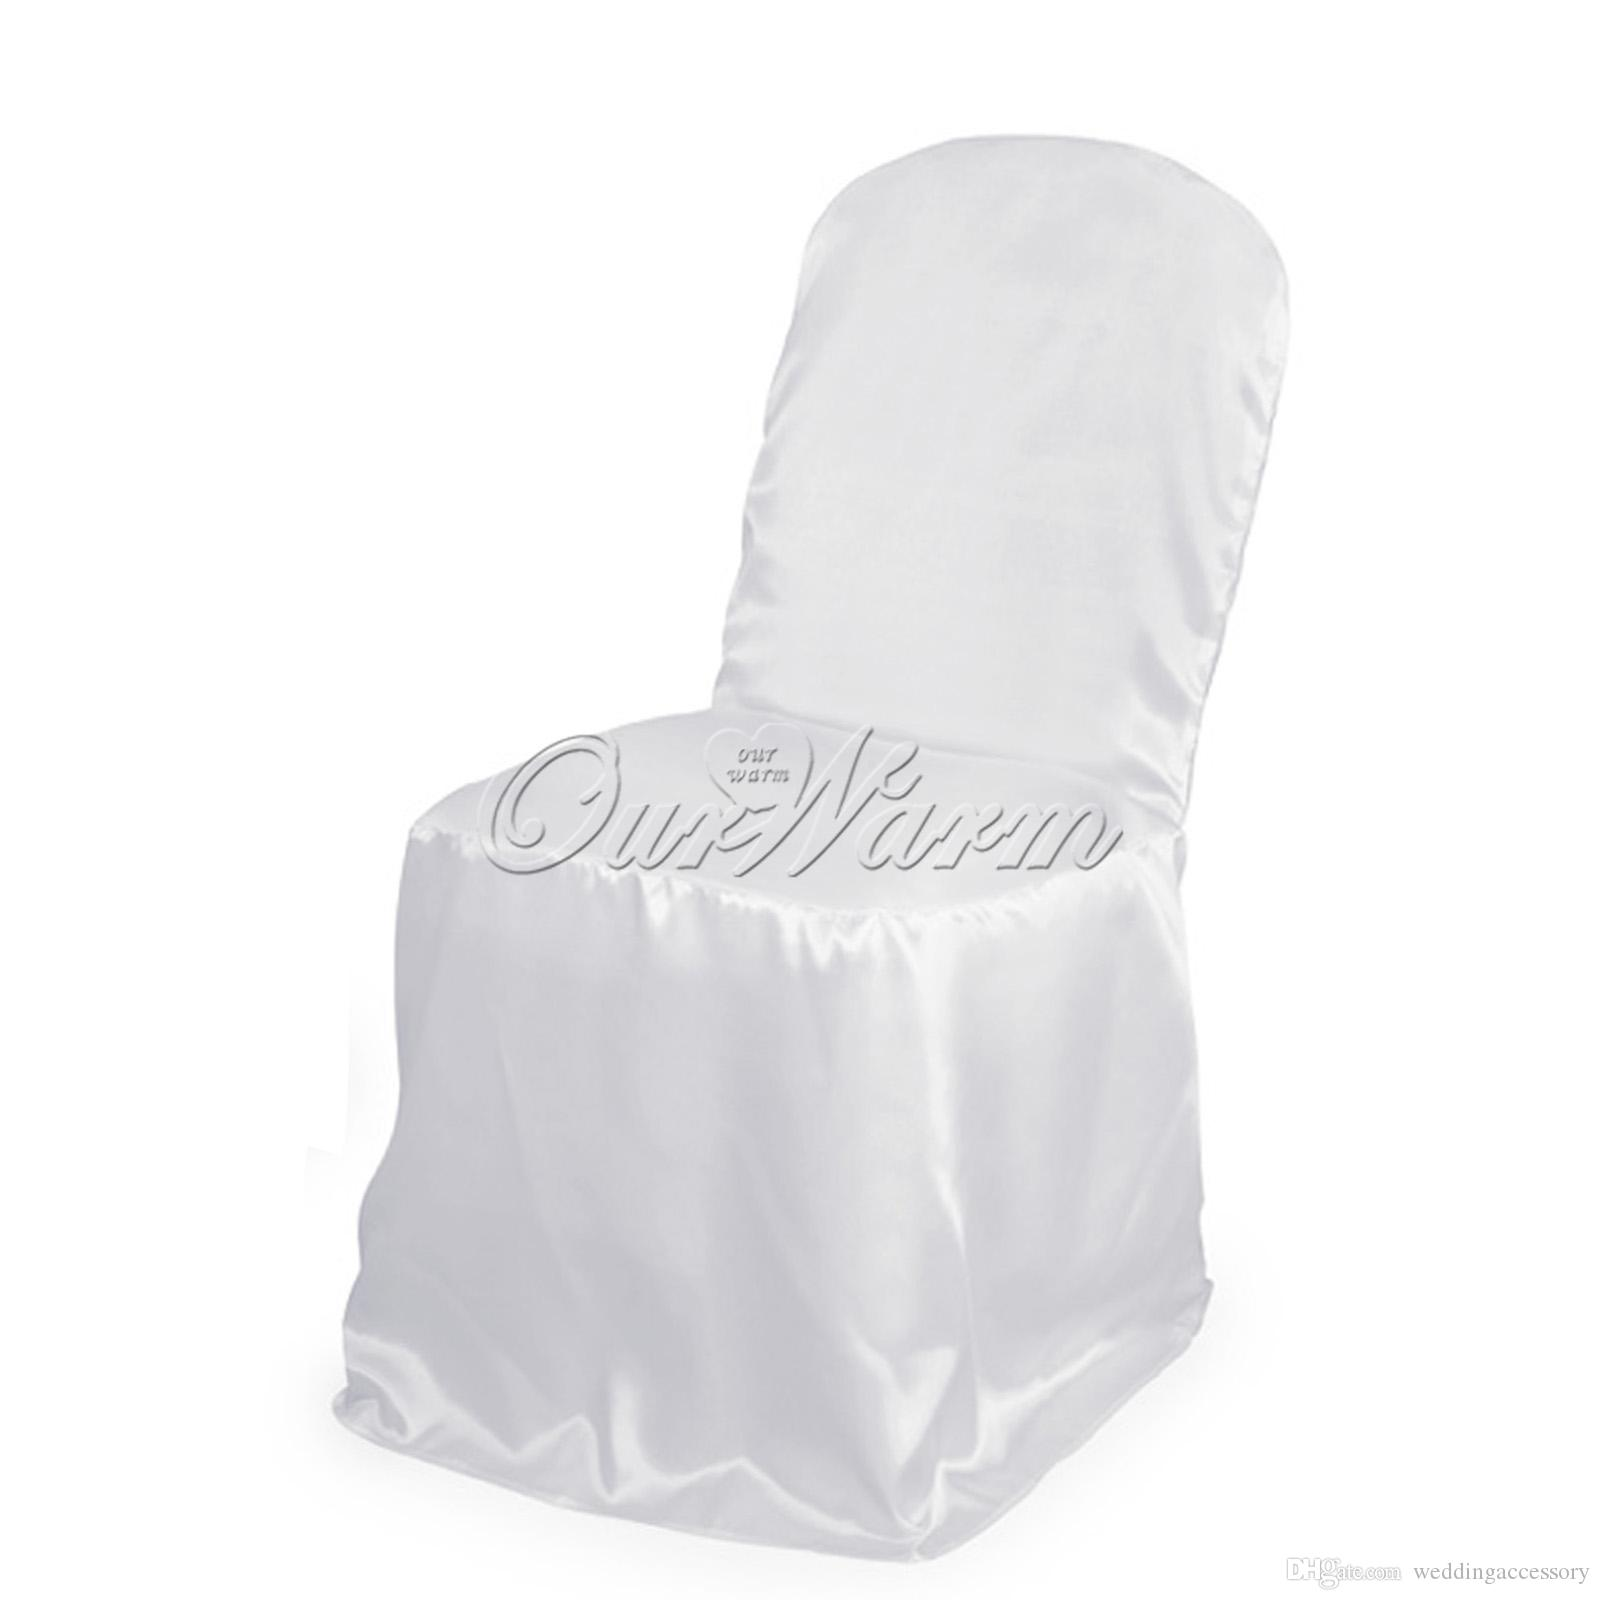 used banquet chair covers wholesale office exercise ball free by dhl ems satin universal white for